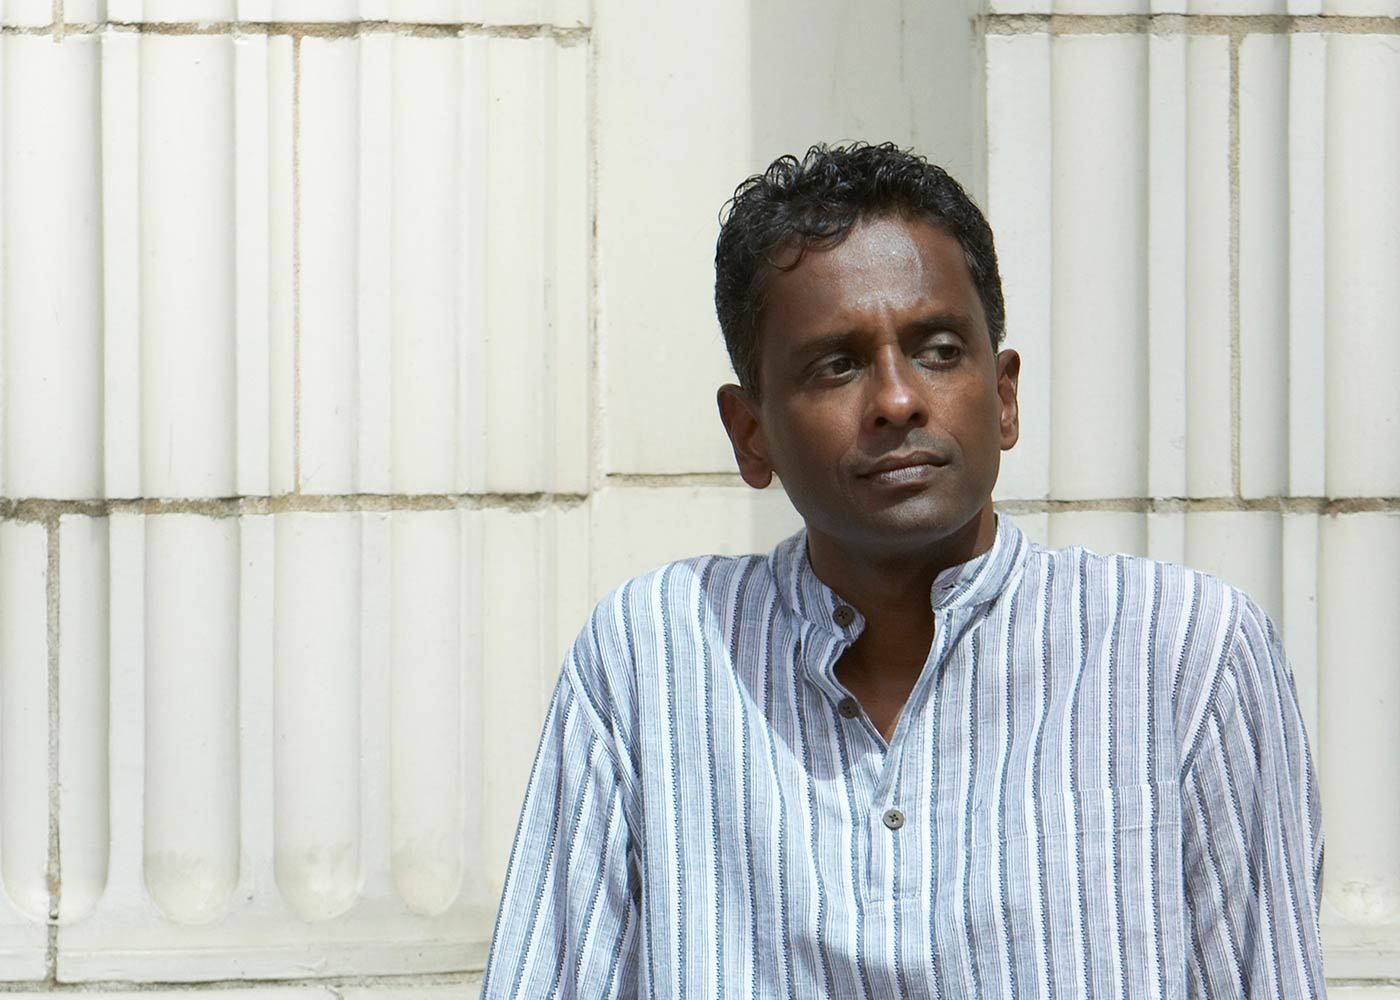 Portrait of author Shyam Selvadurai leaning against wall by Kevin Kelly